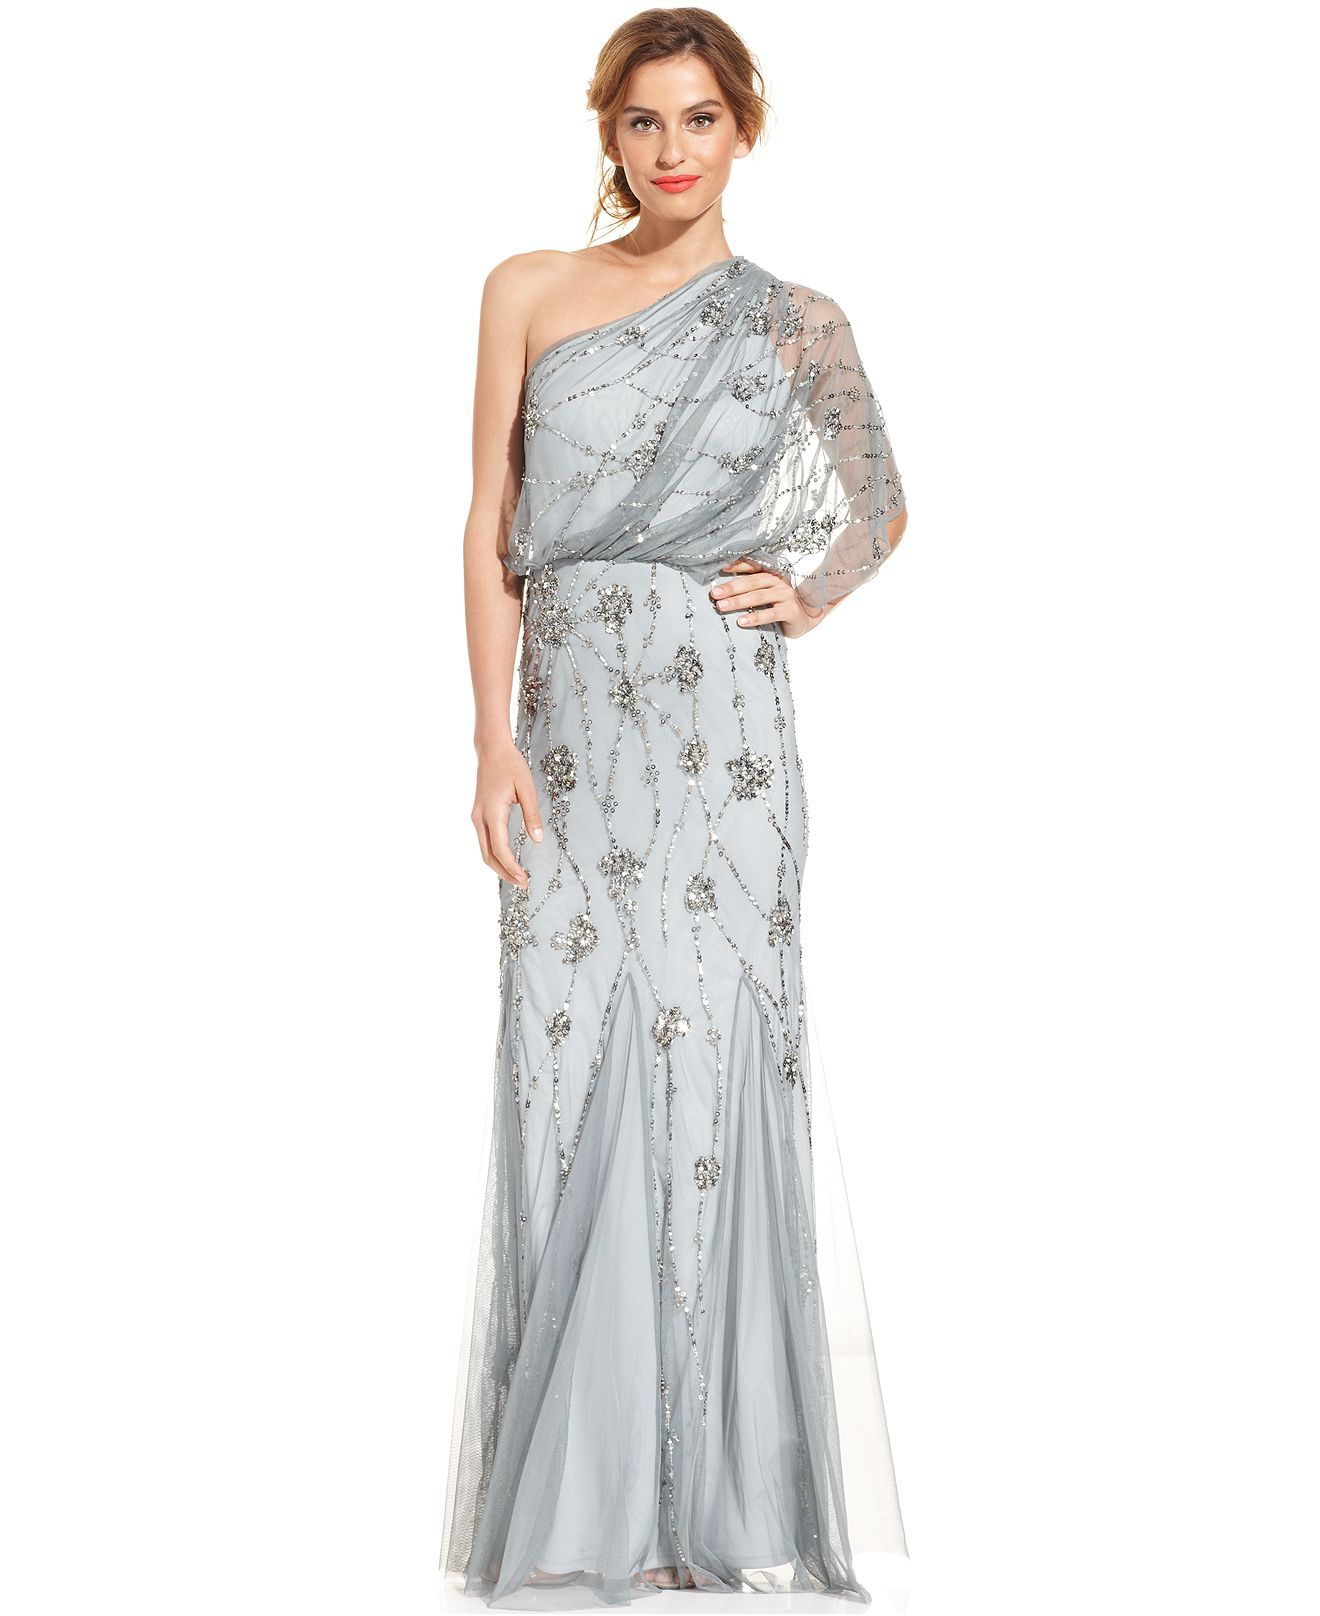 Adrianna papell one shoulder beaded blouson gown bridal women adrianna papell one shoulder beaded blouson gown bridesmaids women macys ombrellifo Images